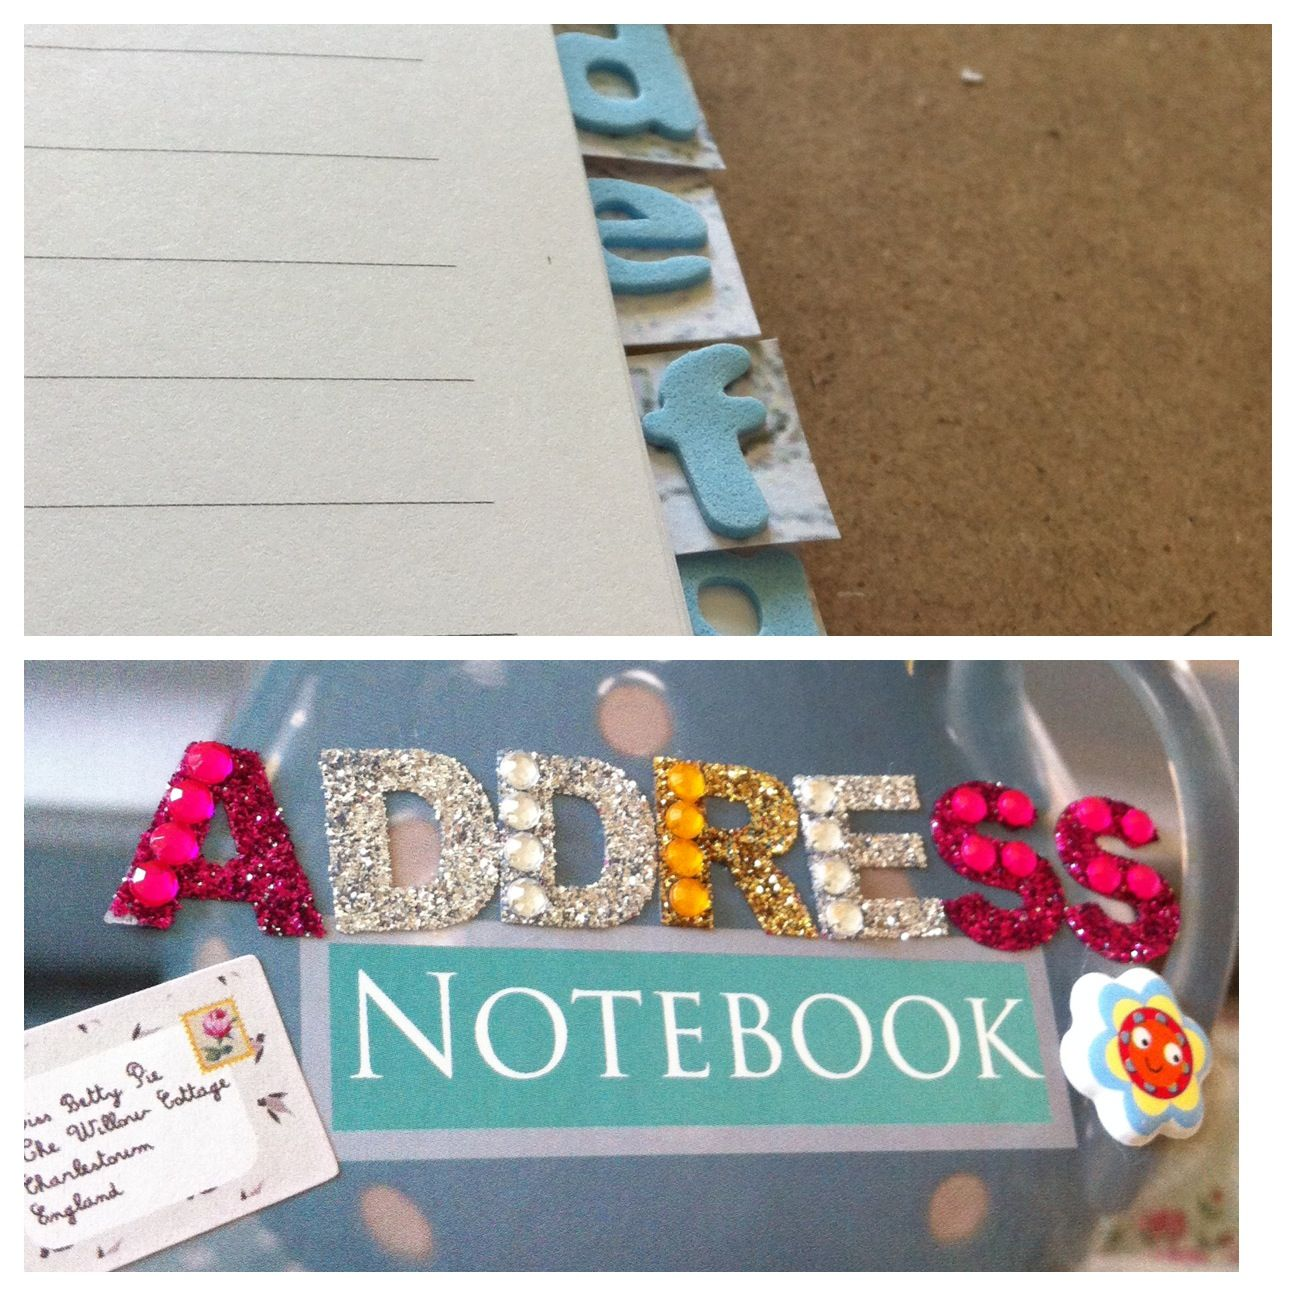 Had a crafty morning turning this notebook into an address book :)